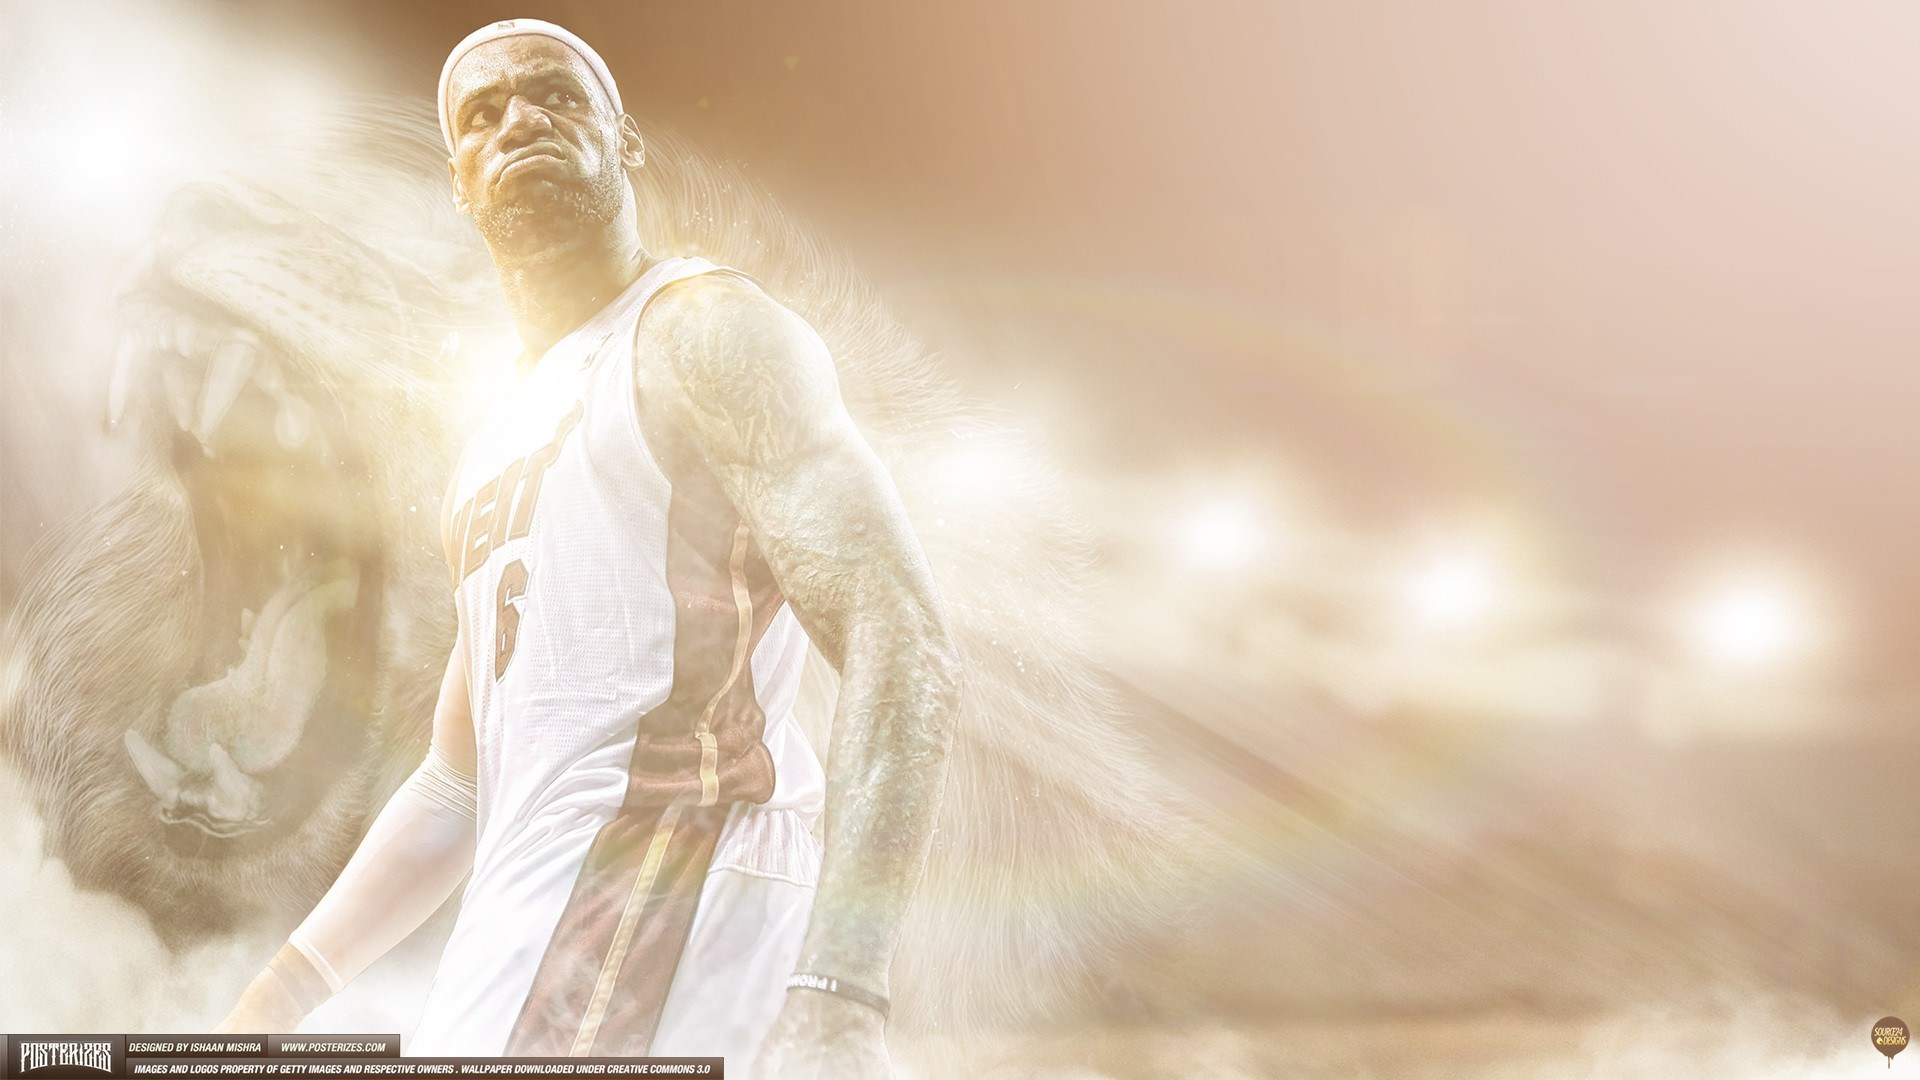 1920x1080-HQ-Definition-Desktop-miami-heat-wallpaper-wp360825-1